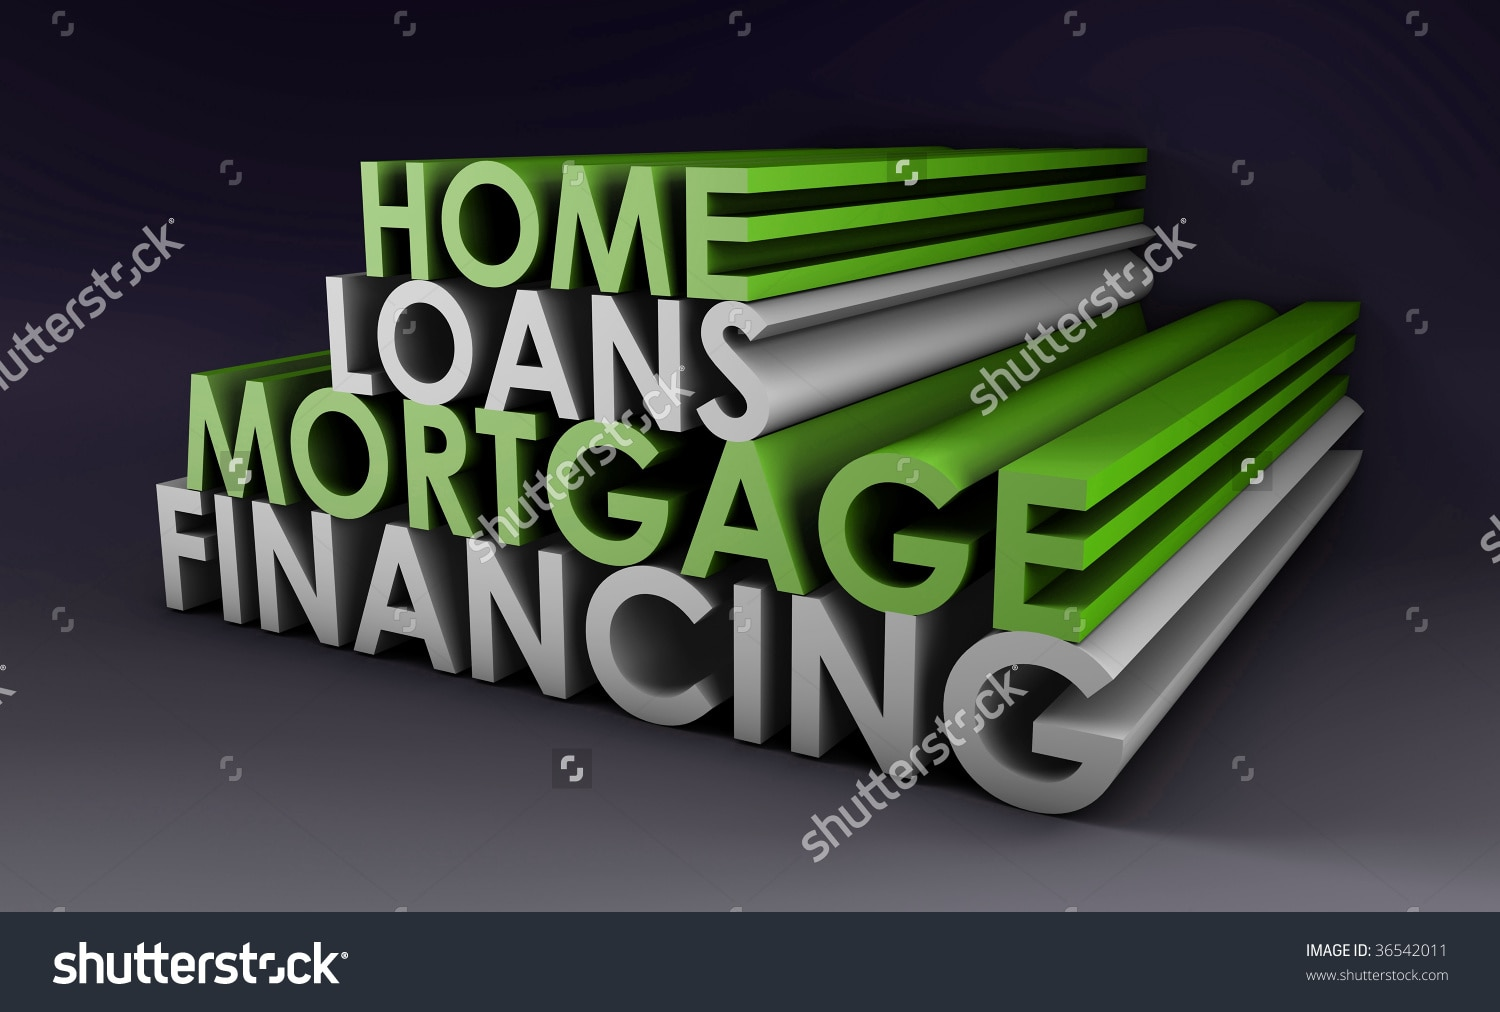 What is the difference between a Home Loan and mortgage loan ? There is a huge difference between a Home Loan and a mortgage loan. Home Loan is taken only for the purpose of buying a residential property whereas mortgage loan  if you have own property, you can get mortgage loan for any purpose.